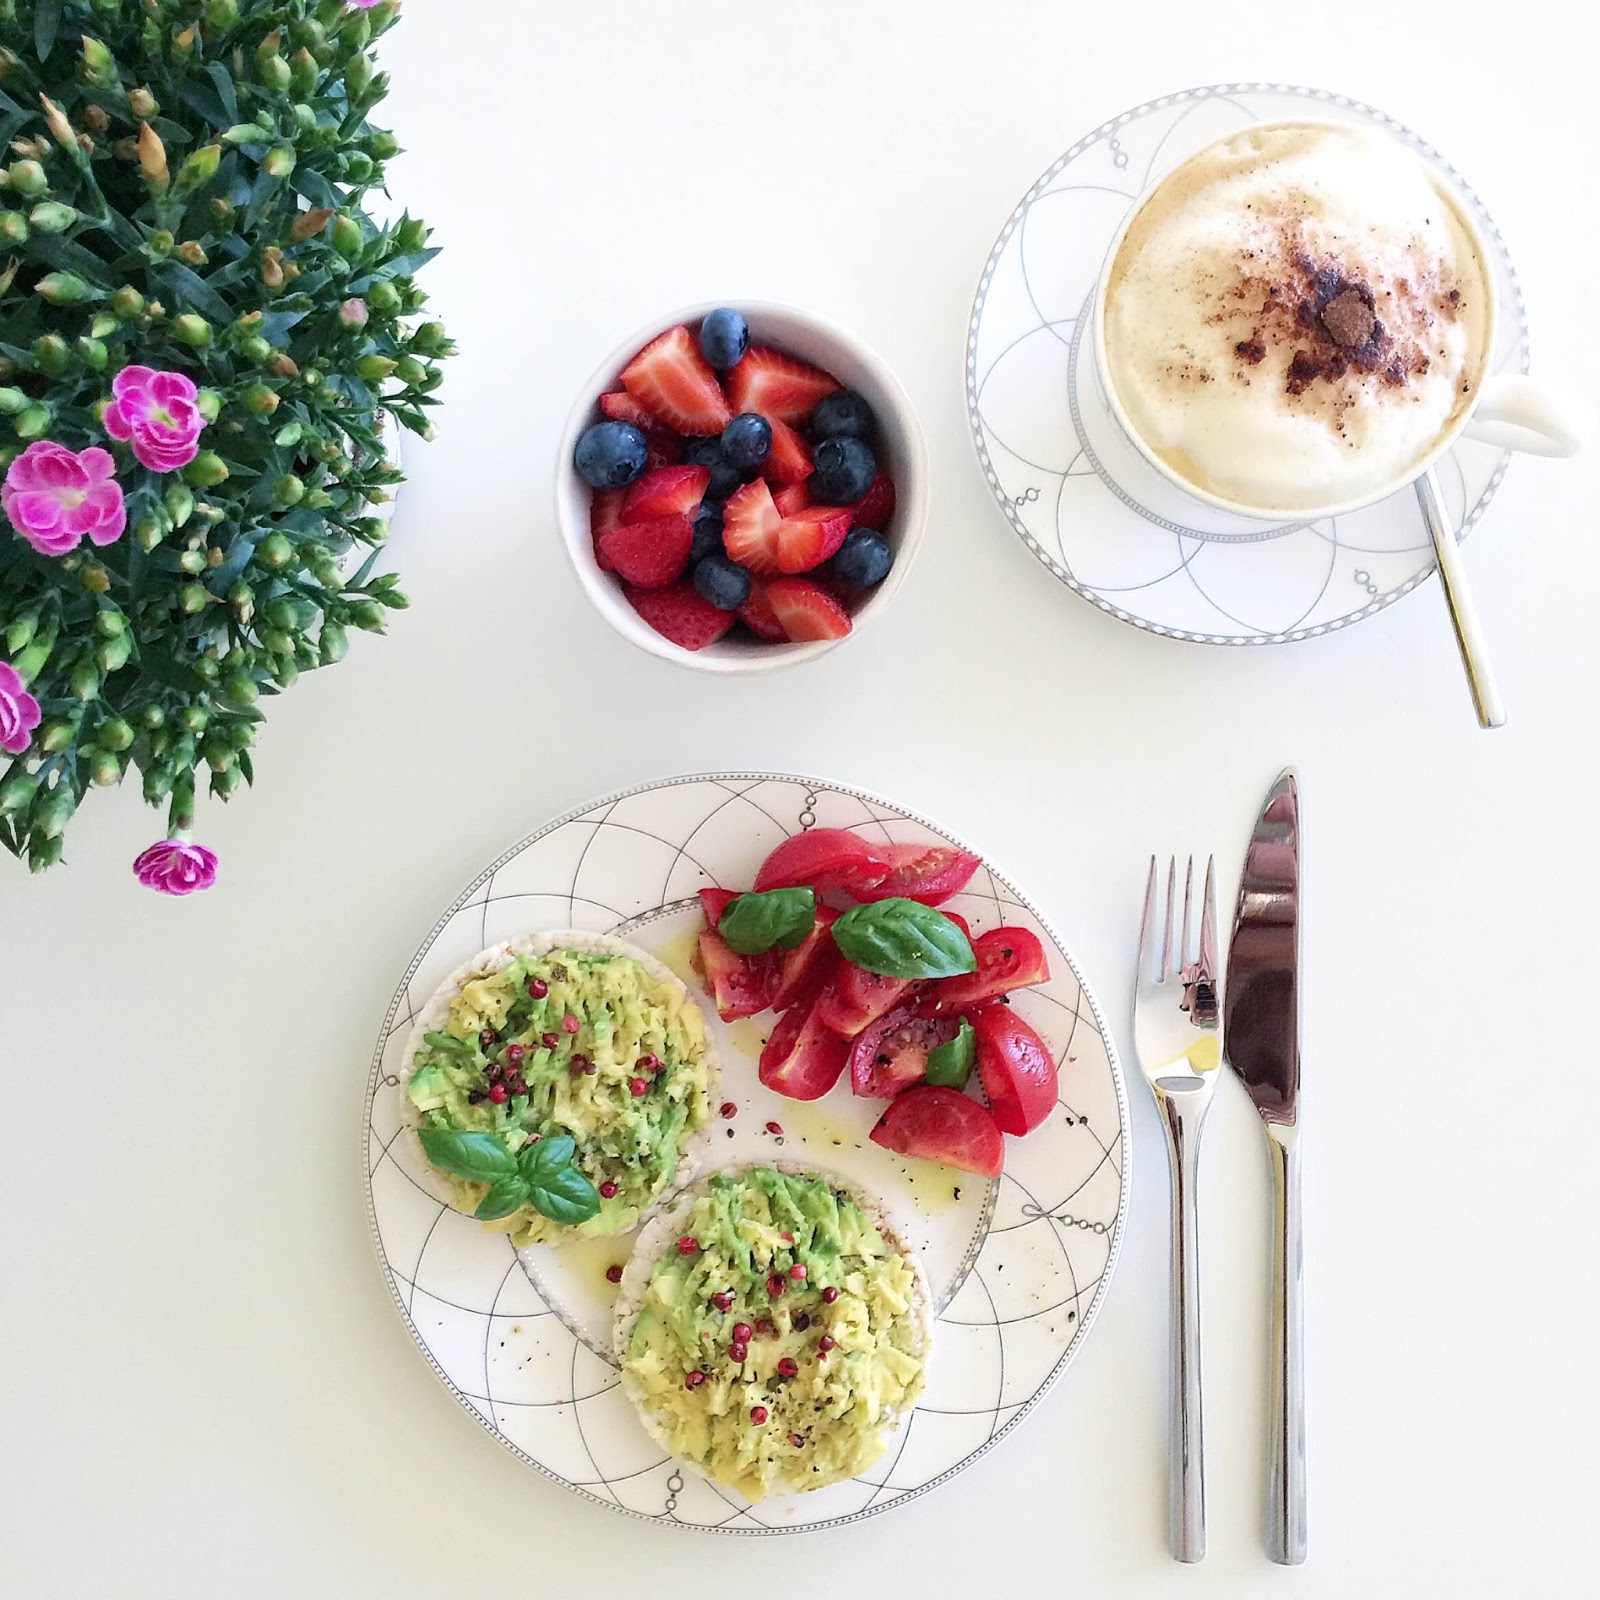 kristjaana mere healthy breakfast avocado rice bread berries cappuccino coffee